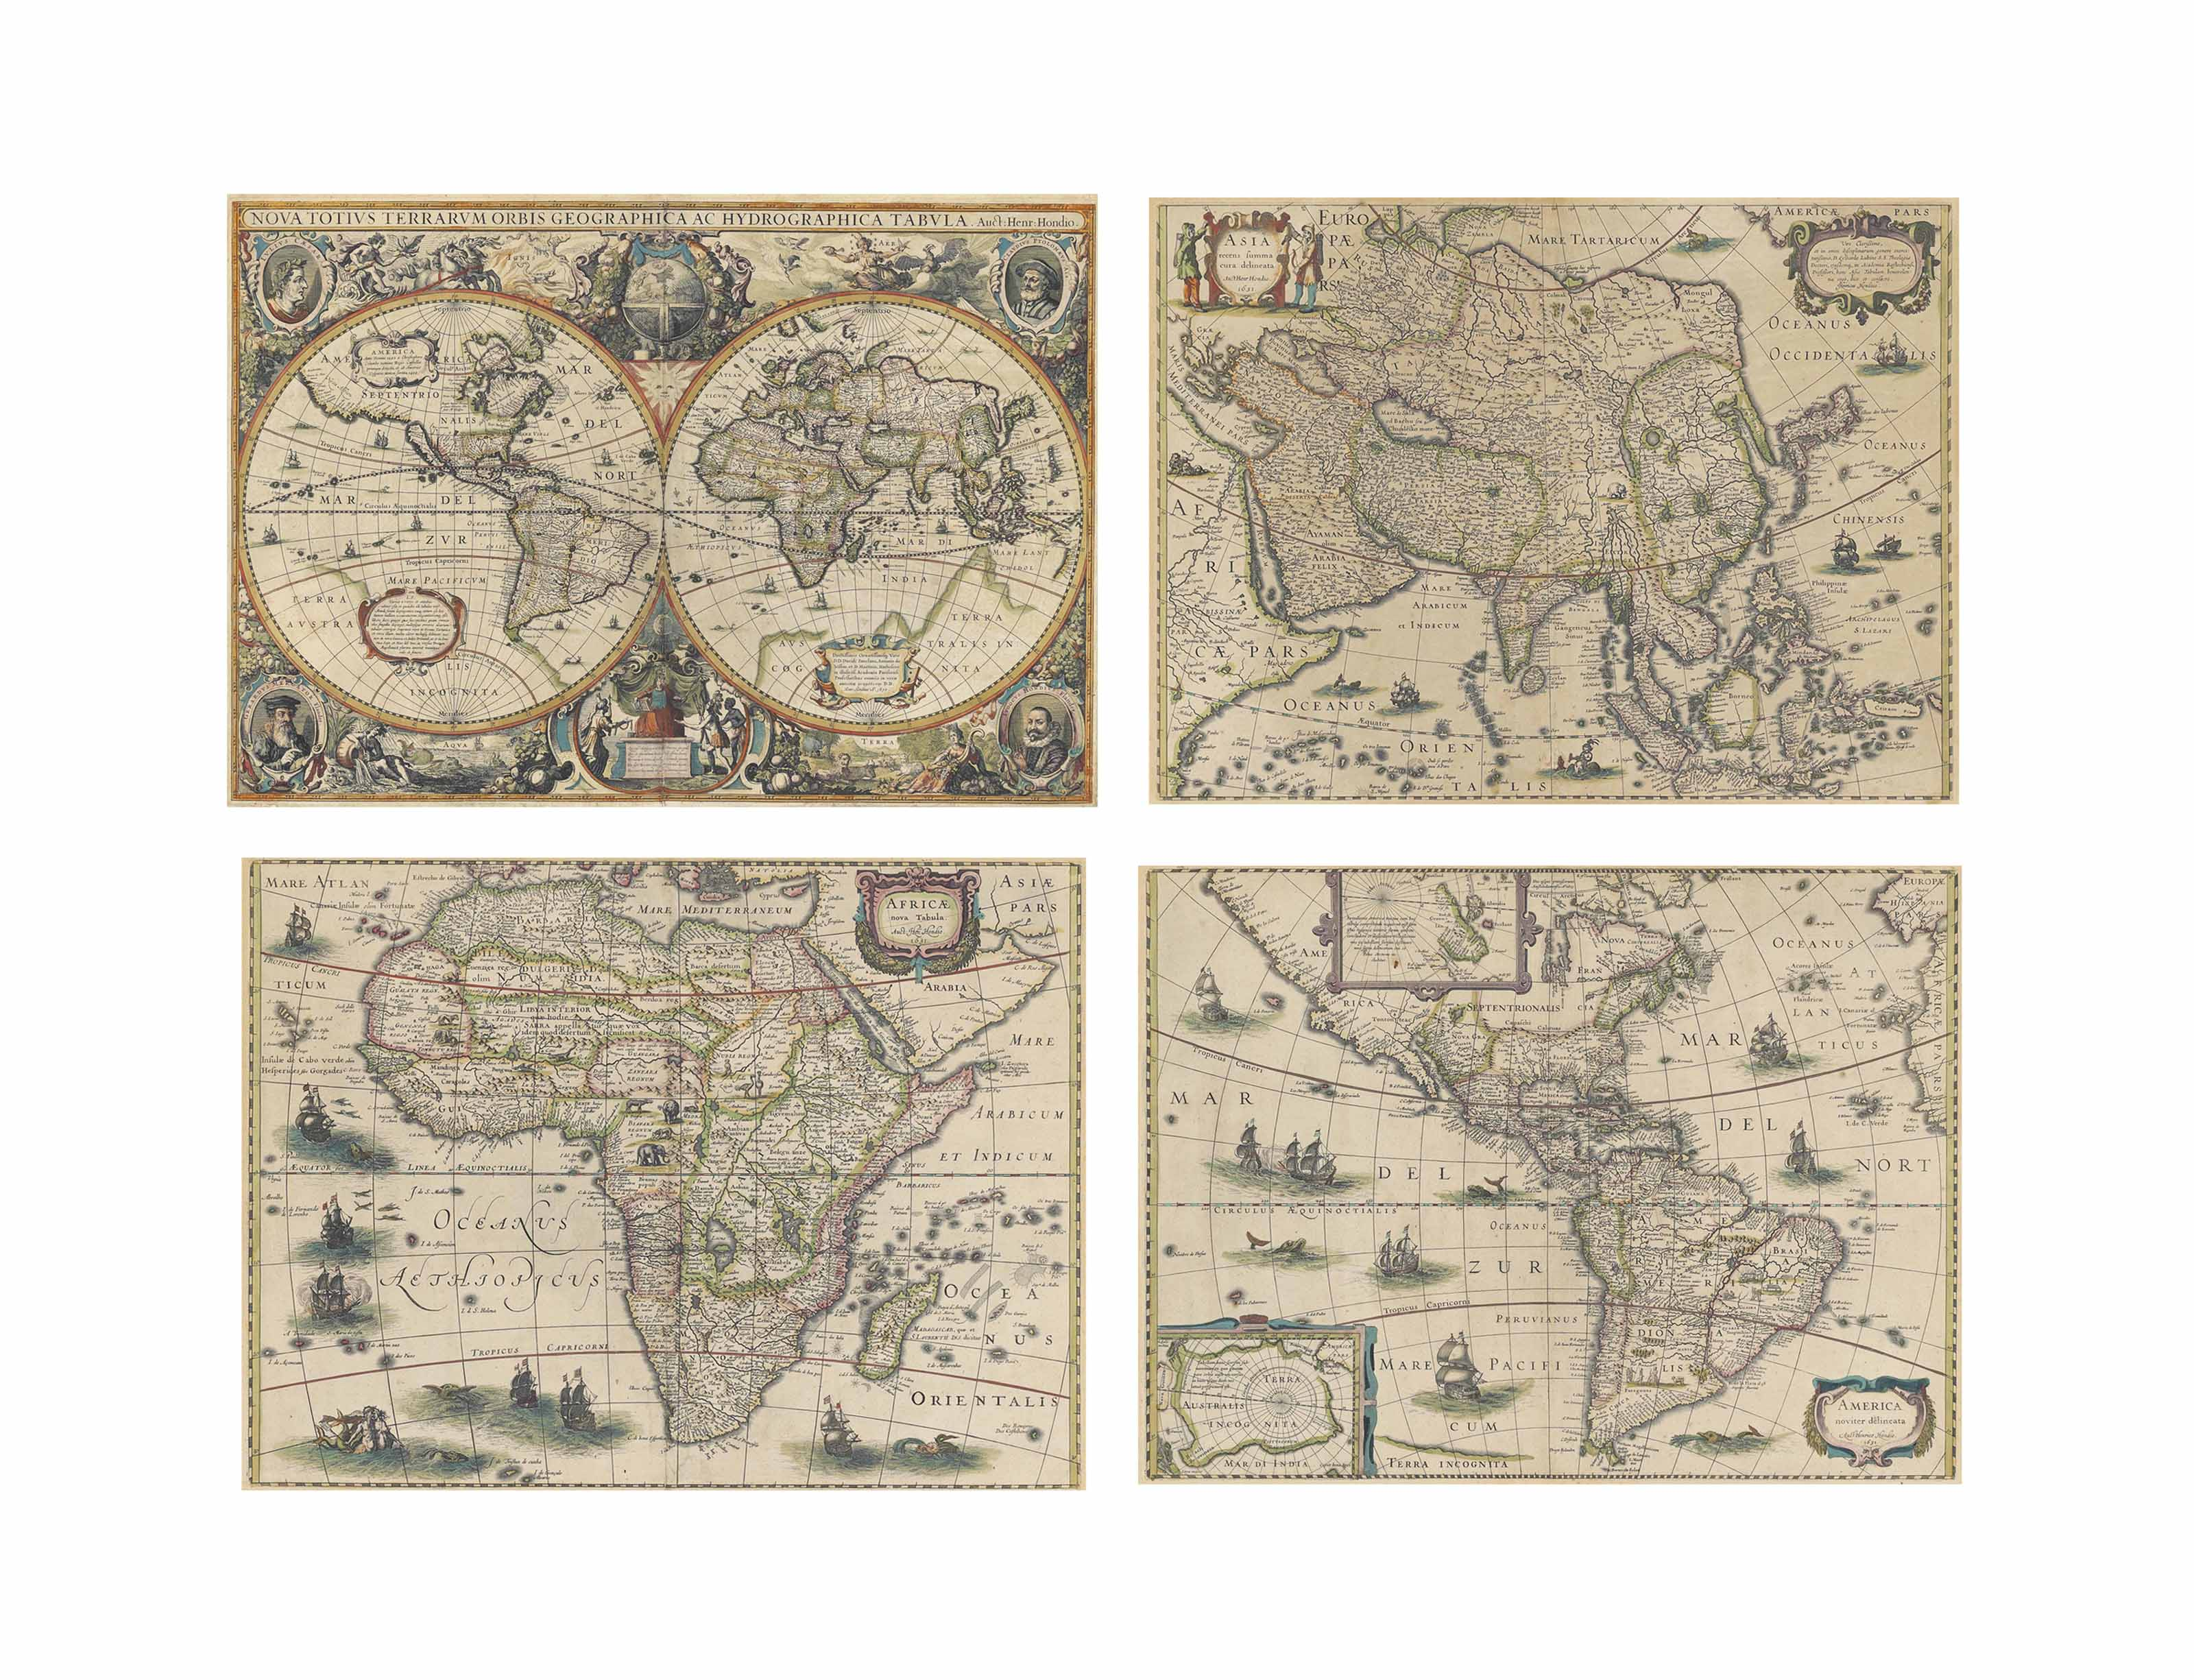 HONDIUS, Henricus (1596/7-1651). [WORLD AND CONTINENTS] -- Nova Totius Terrarum Orbis Geographica ac Hydrographica Tabula. Amsterdam: Johannes Janssonius 1630. Hand-coloured engraved twin hemisphere map of the world (376 x 542mm), embellished with spandral allegorical vignettes representing the four elements and portrait cartouches of Julius Caesar, Claudius Ptolomaeus, Gerard Mercator and Jodocus Hondius at each corner. Shirley 336 'A FINE ORNATE EXAMPLE OF THE DECORATIVE CARTOGRAPHY OF THE TIME'; Van der Krogt I, 0001:1C.1.